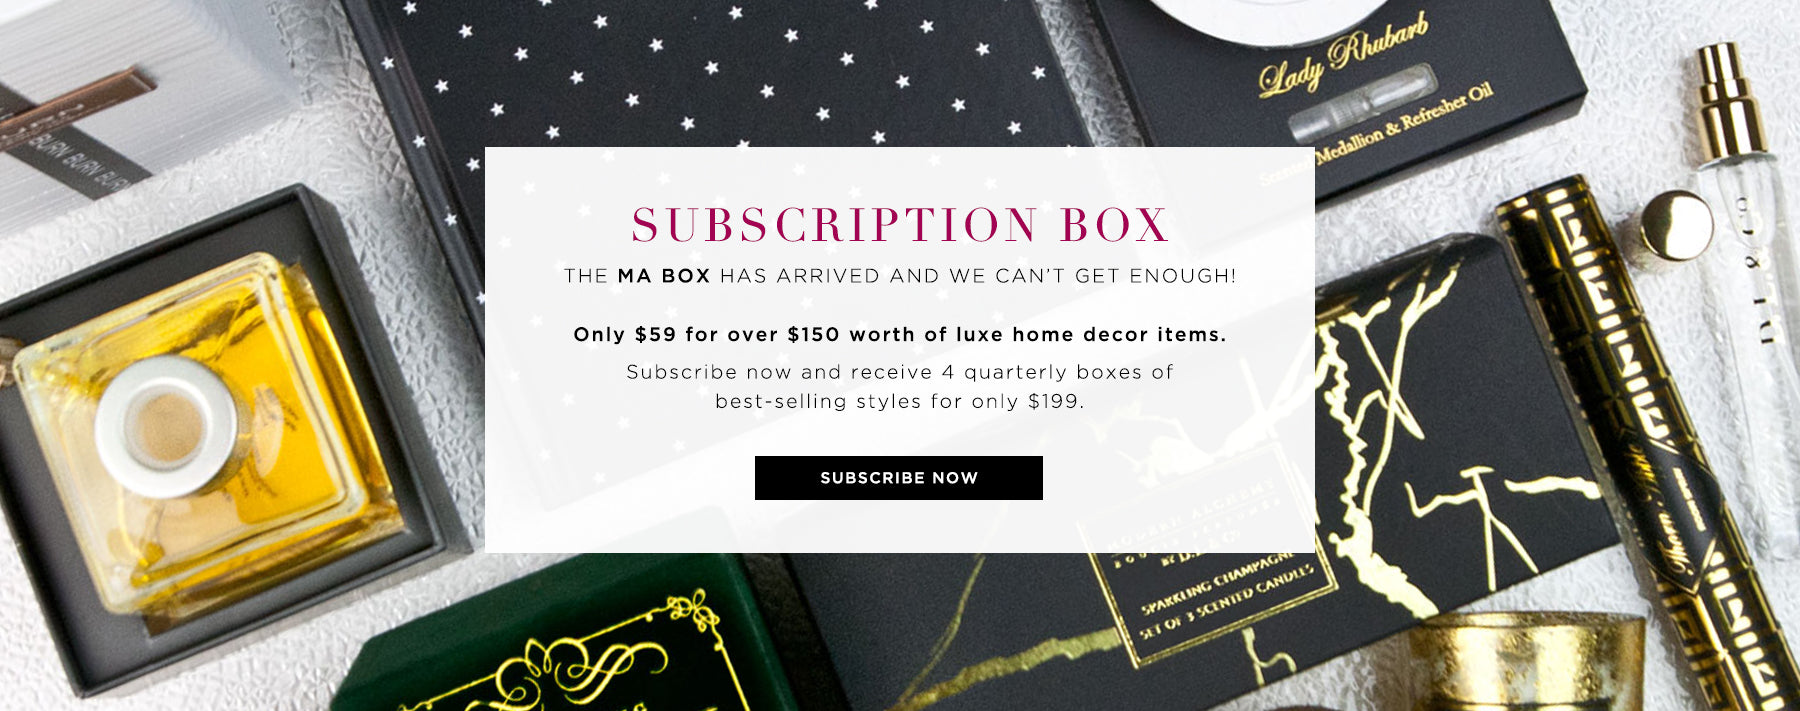 Subscription Box: The MA Box has arrived. Only $59 for over $150 worth of luxe home decor items. Subscribe now.